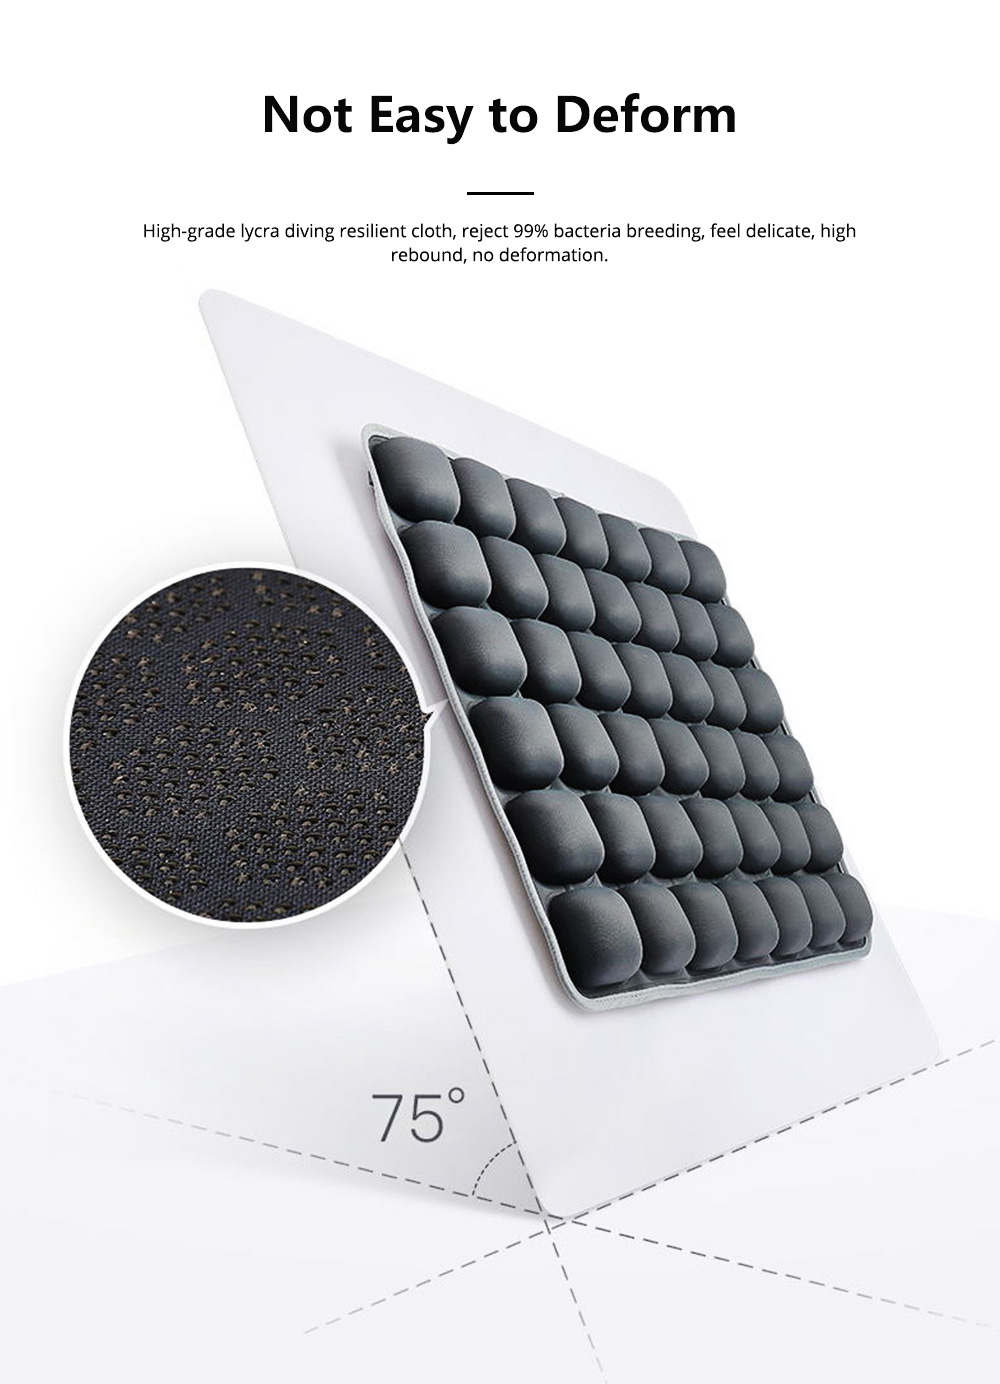 3D Air Bag Seat Cushion for Home Office and Car Use, Back Cushion for Back Pain Relief with Massage Function 7